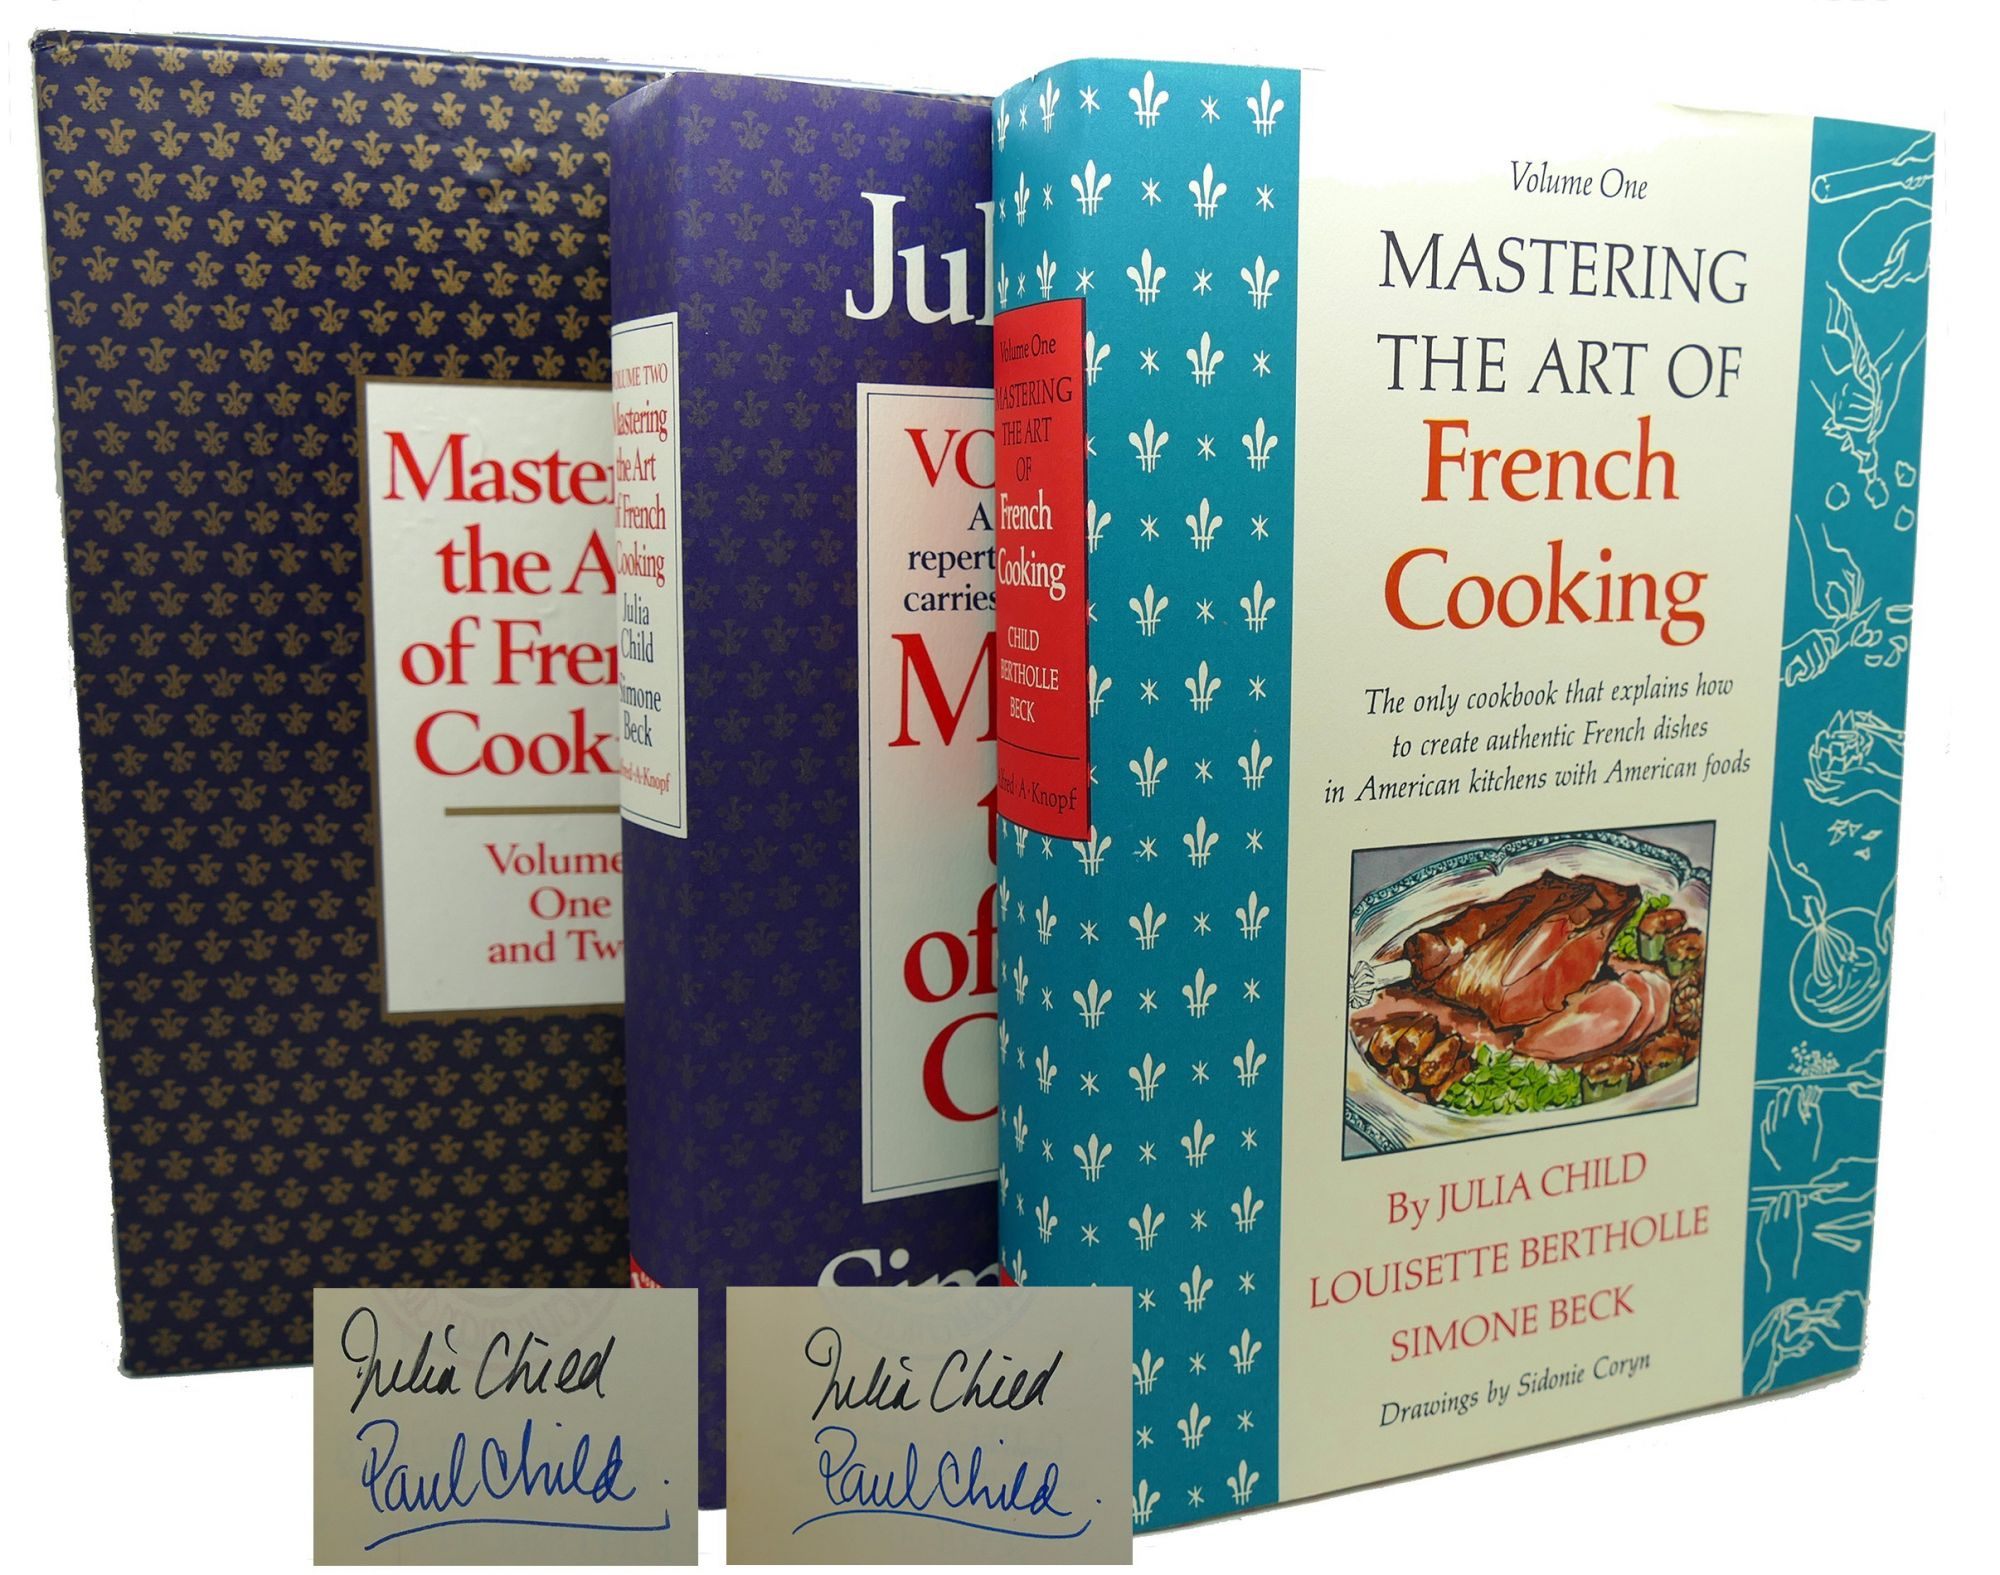 MASTERING THE ART OF FRENCH COOKING SIGNED 2 Volume Set